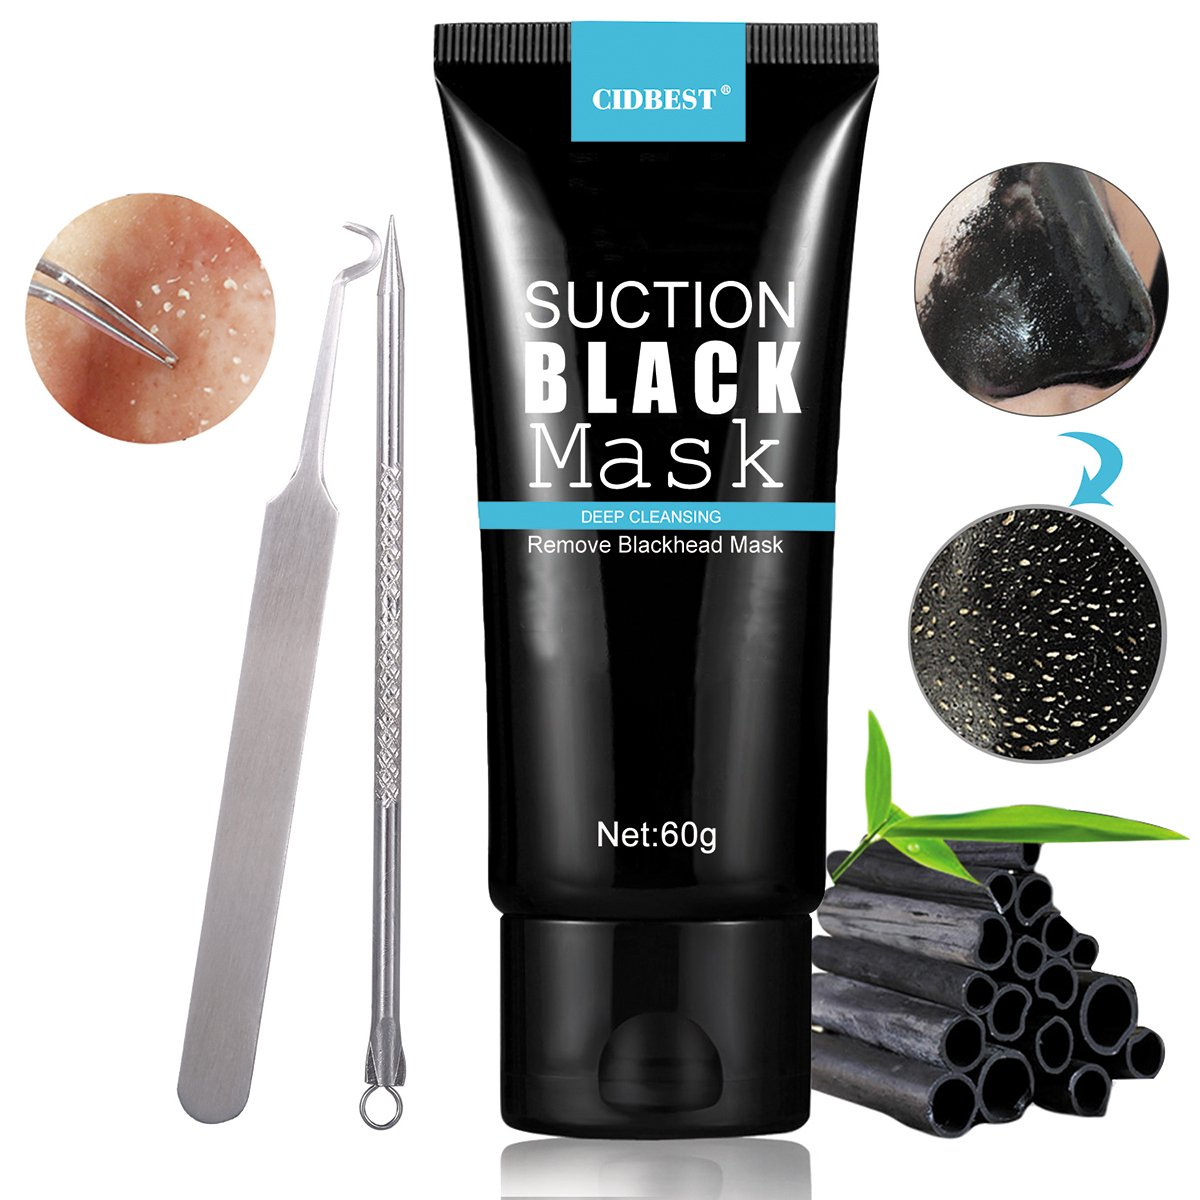 Bamboo Charcoal Peel off Mask , Blackhead Remover Tool Kit, Black Mask, Blackhead Remover Mask, Purifying Peel-off Acne Mask, Deep Cleansing Suction Blackhead Black Mud Face Mask